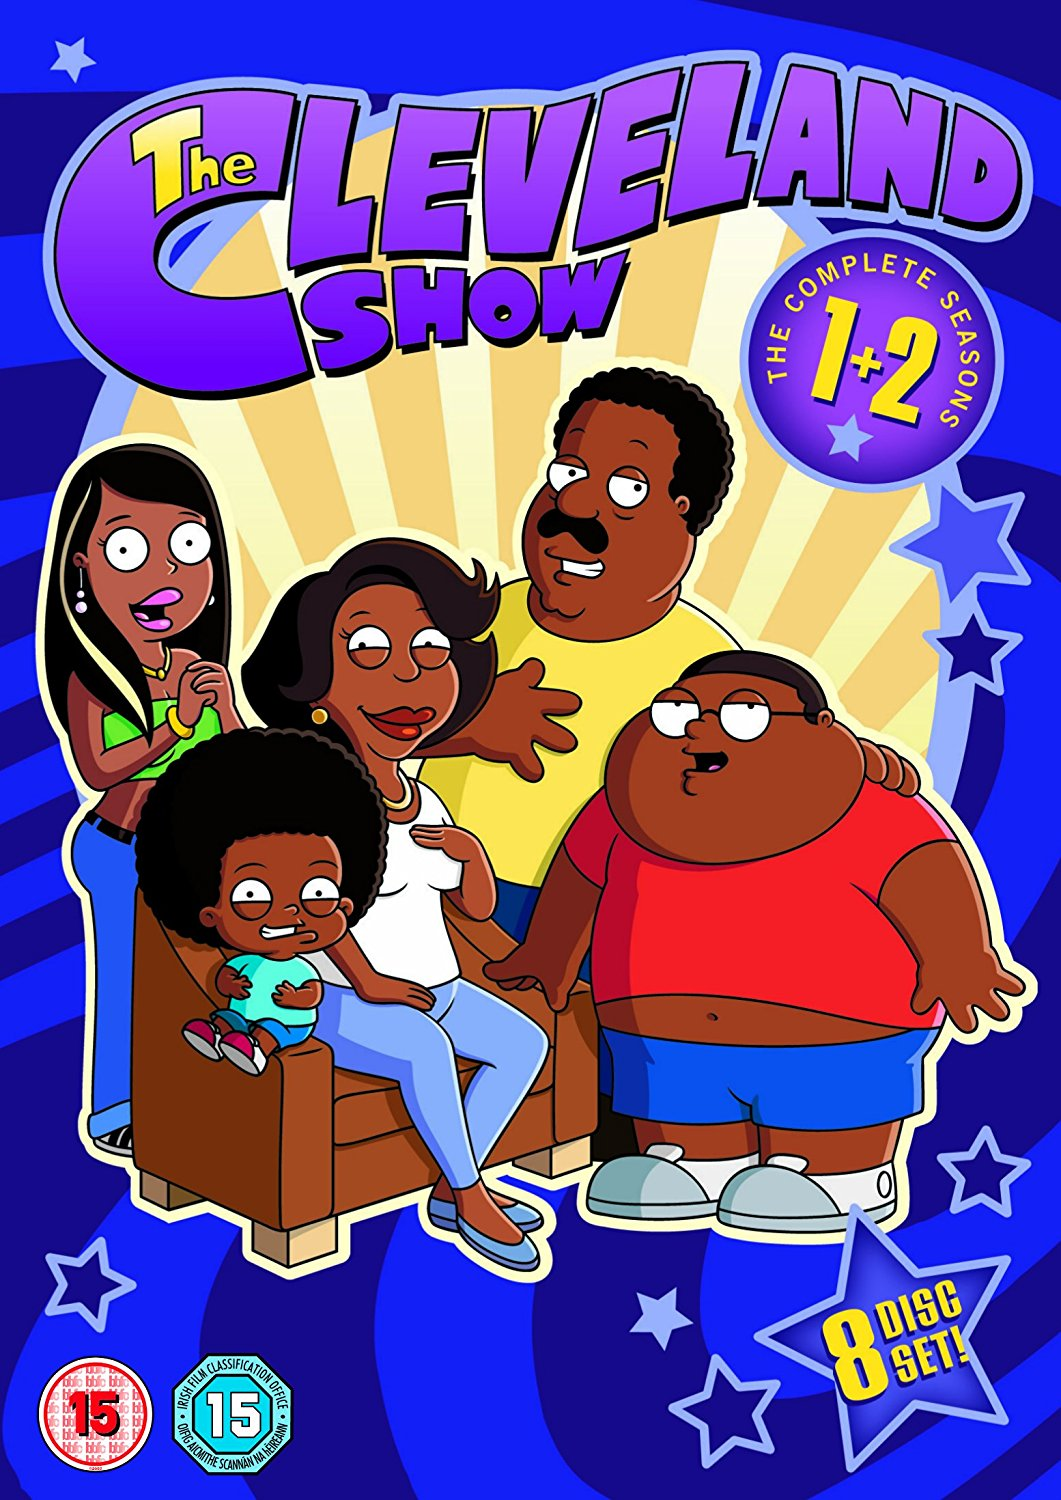 The Cleveland Show DVD cover